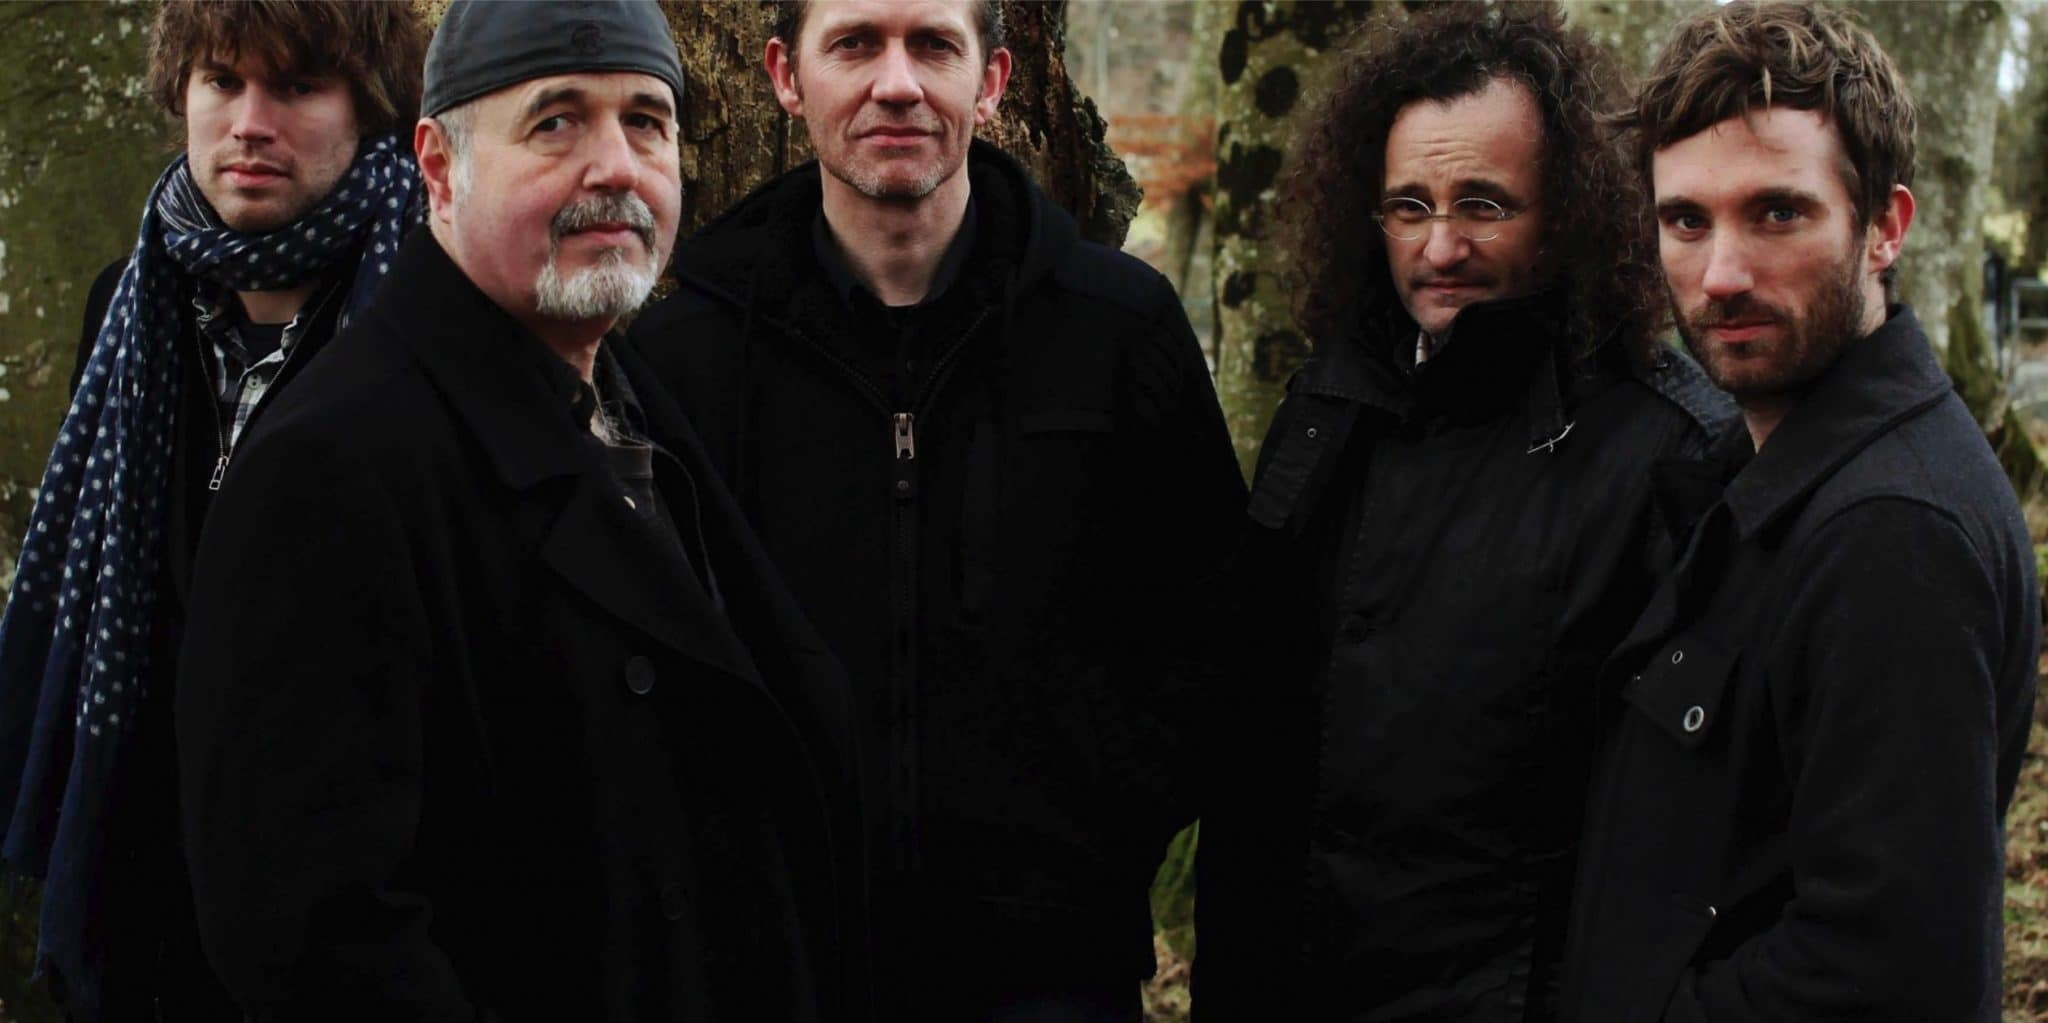 The Gloaming: Taking It To The Live